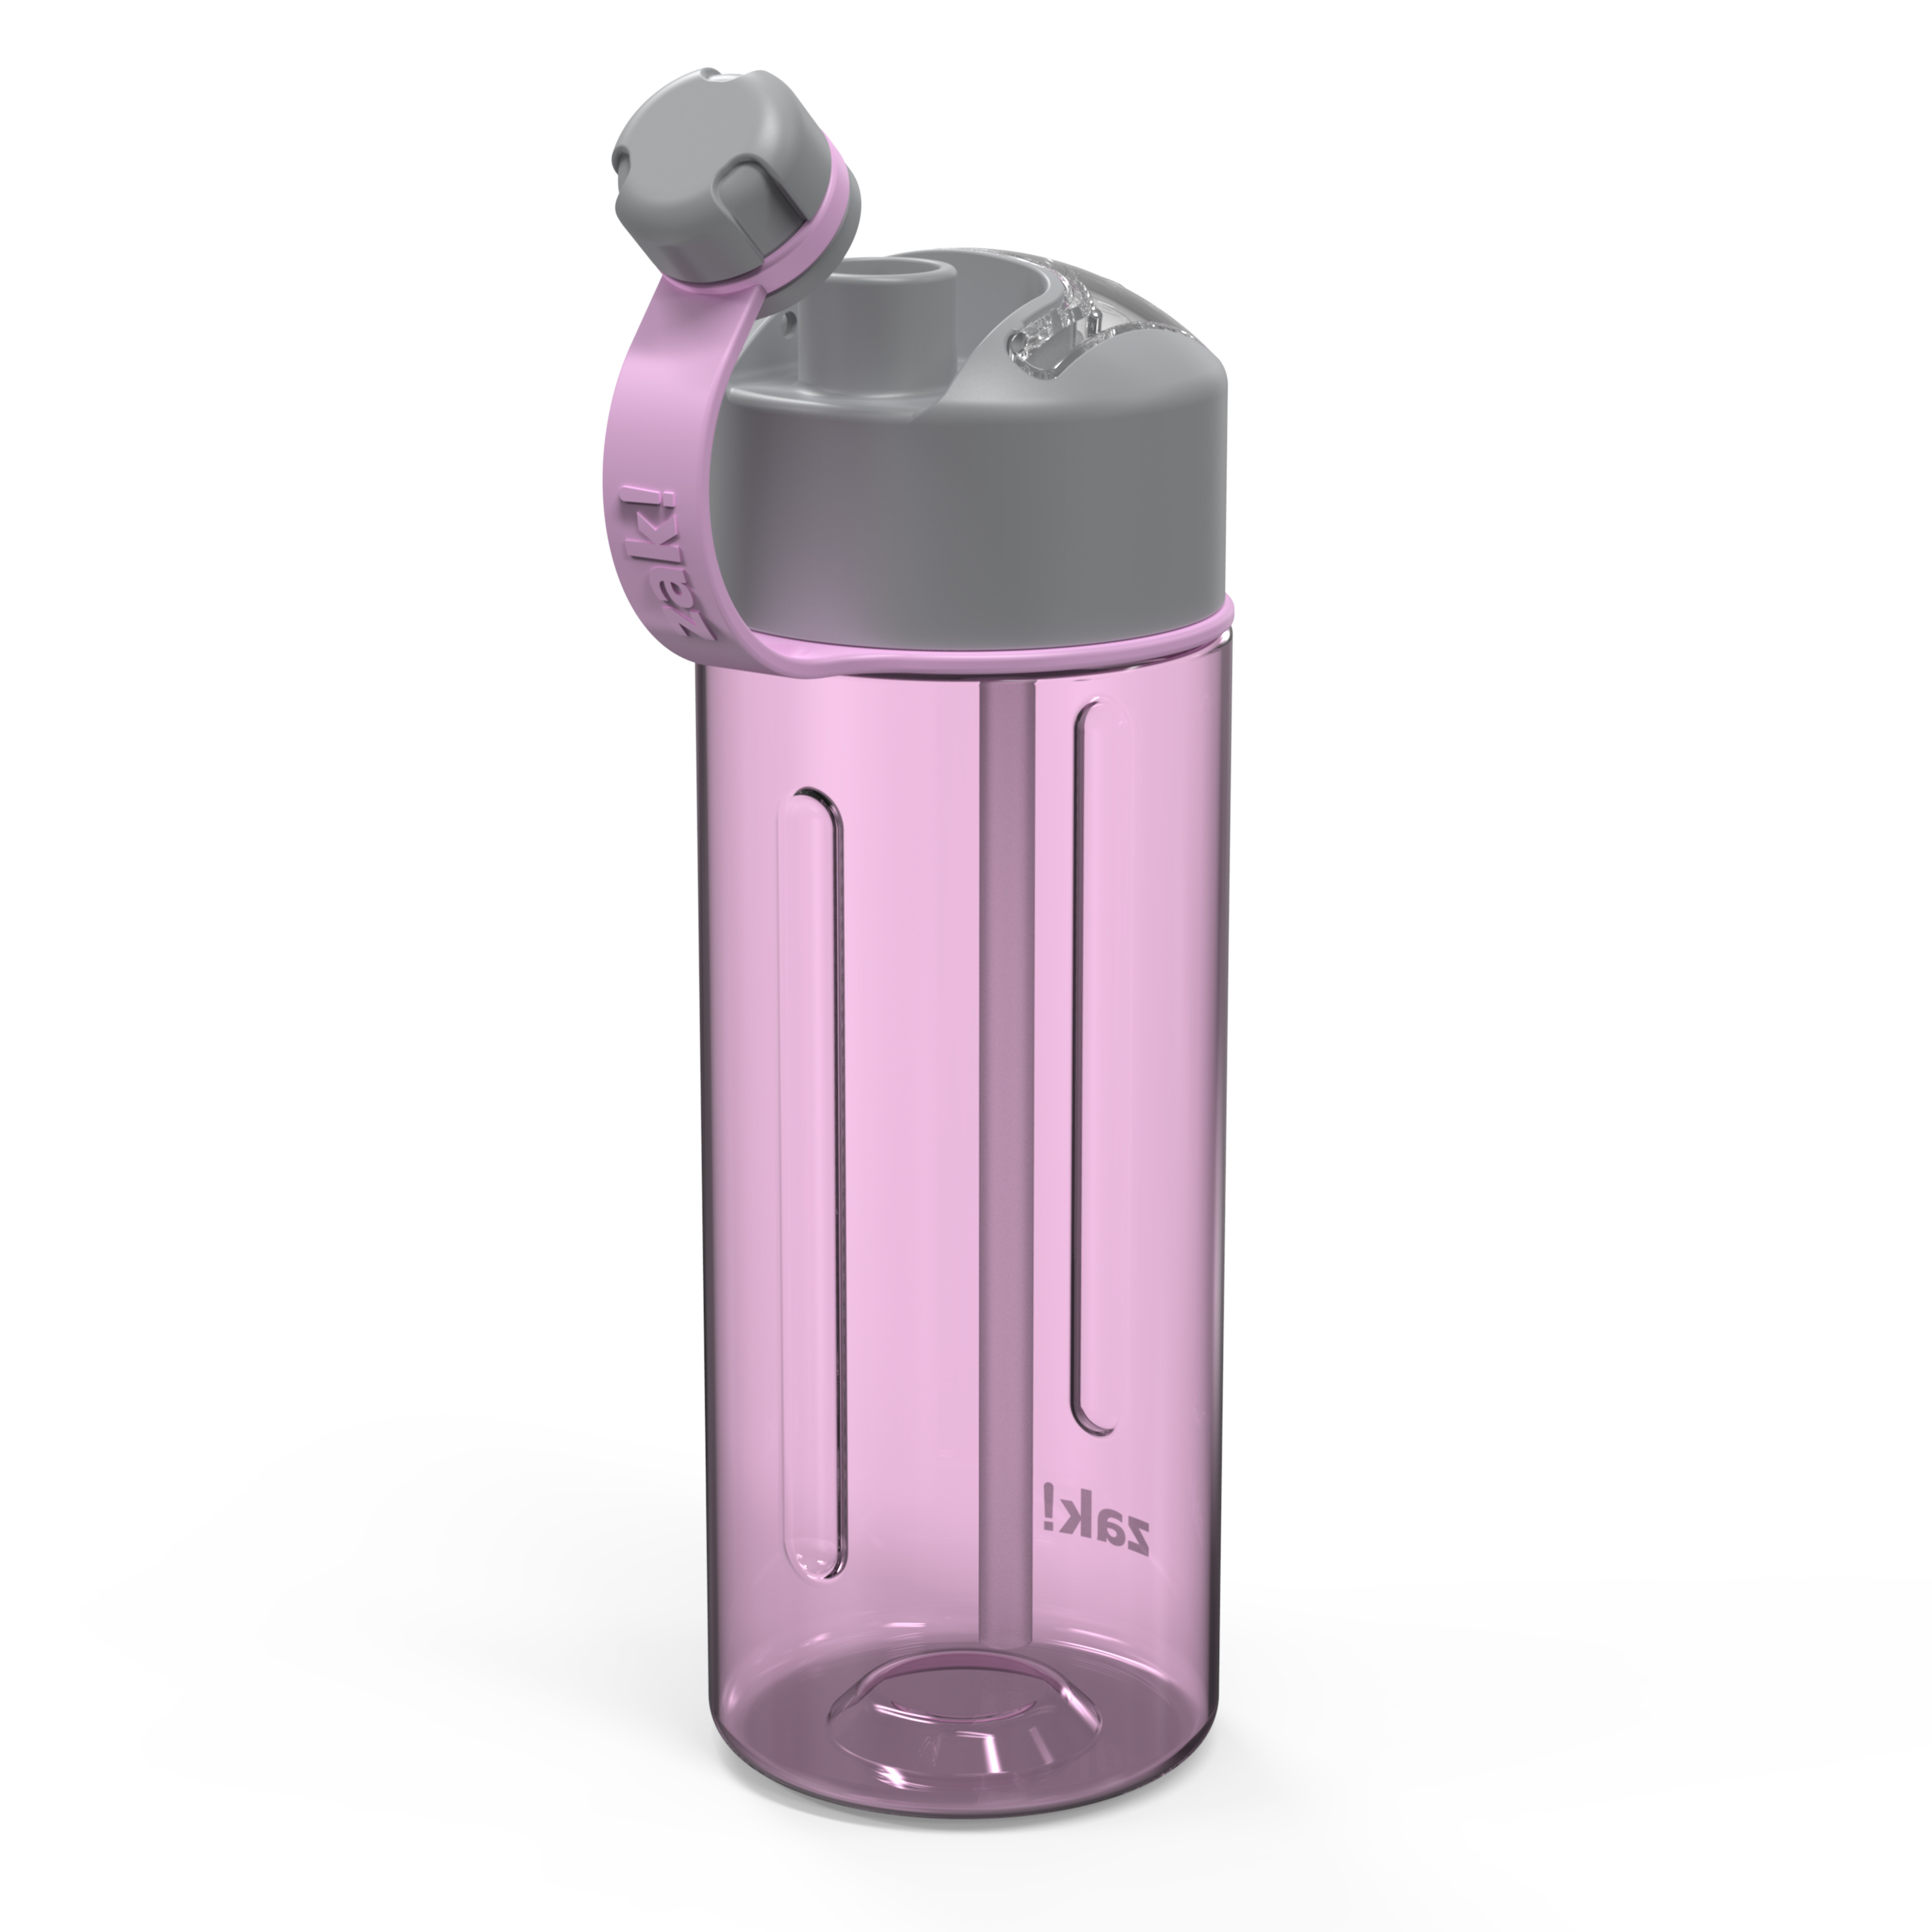 Genesis 24 ounce Water Bottle, Lilac slideshow image 6